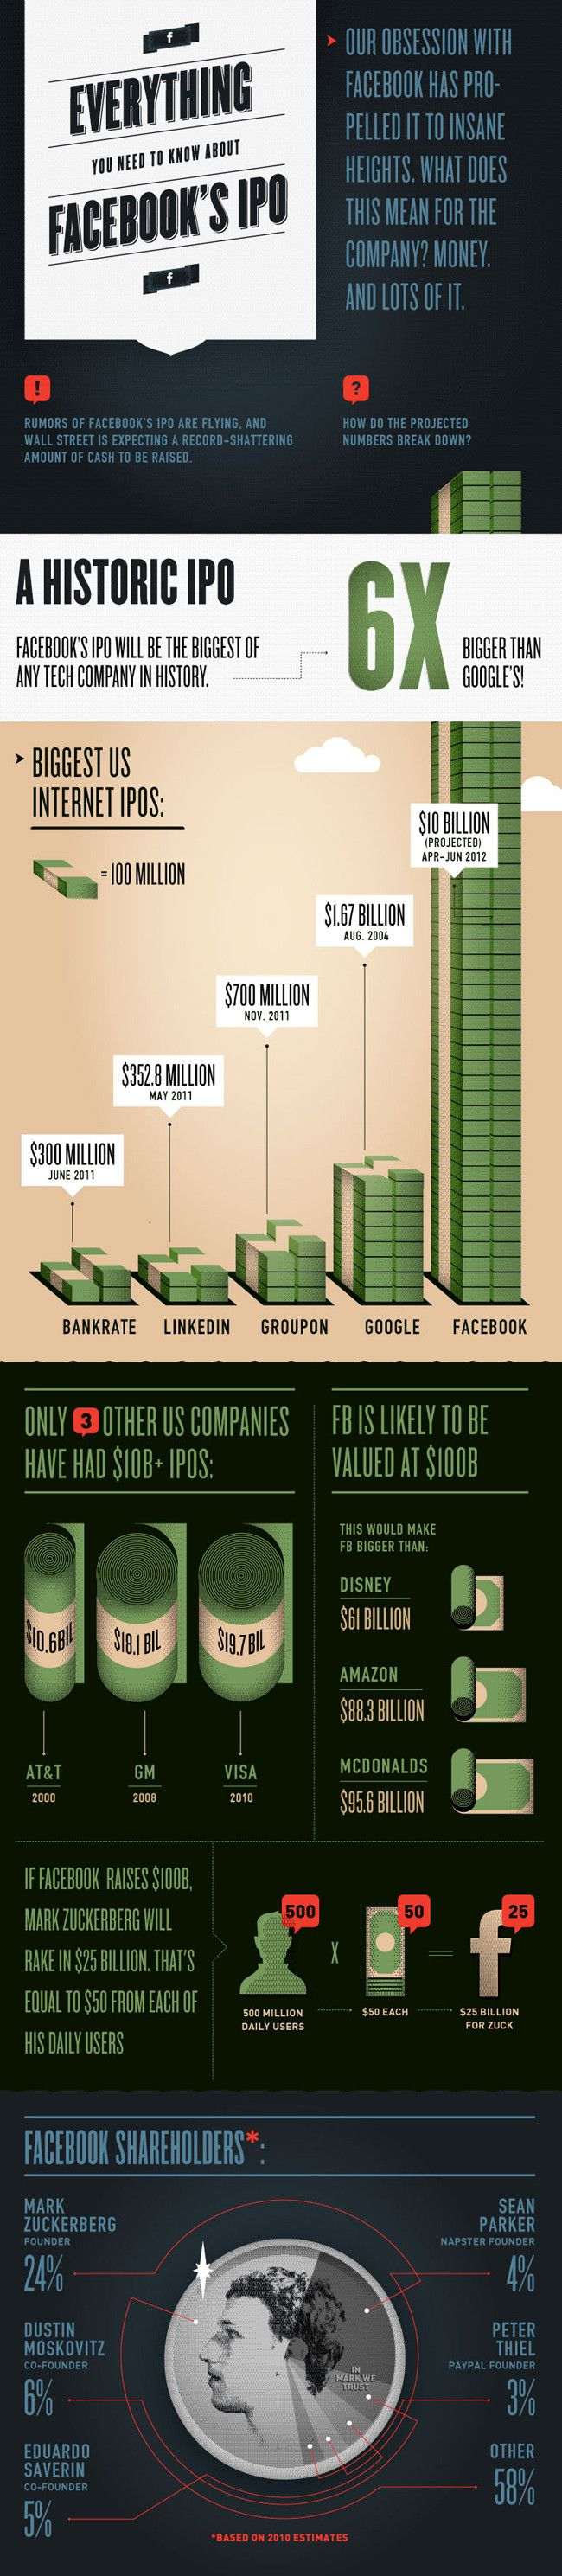 About Facebook's IPO